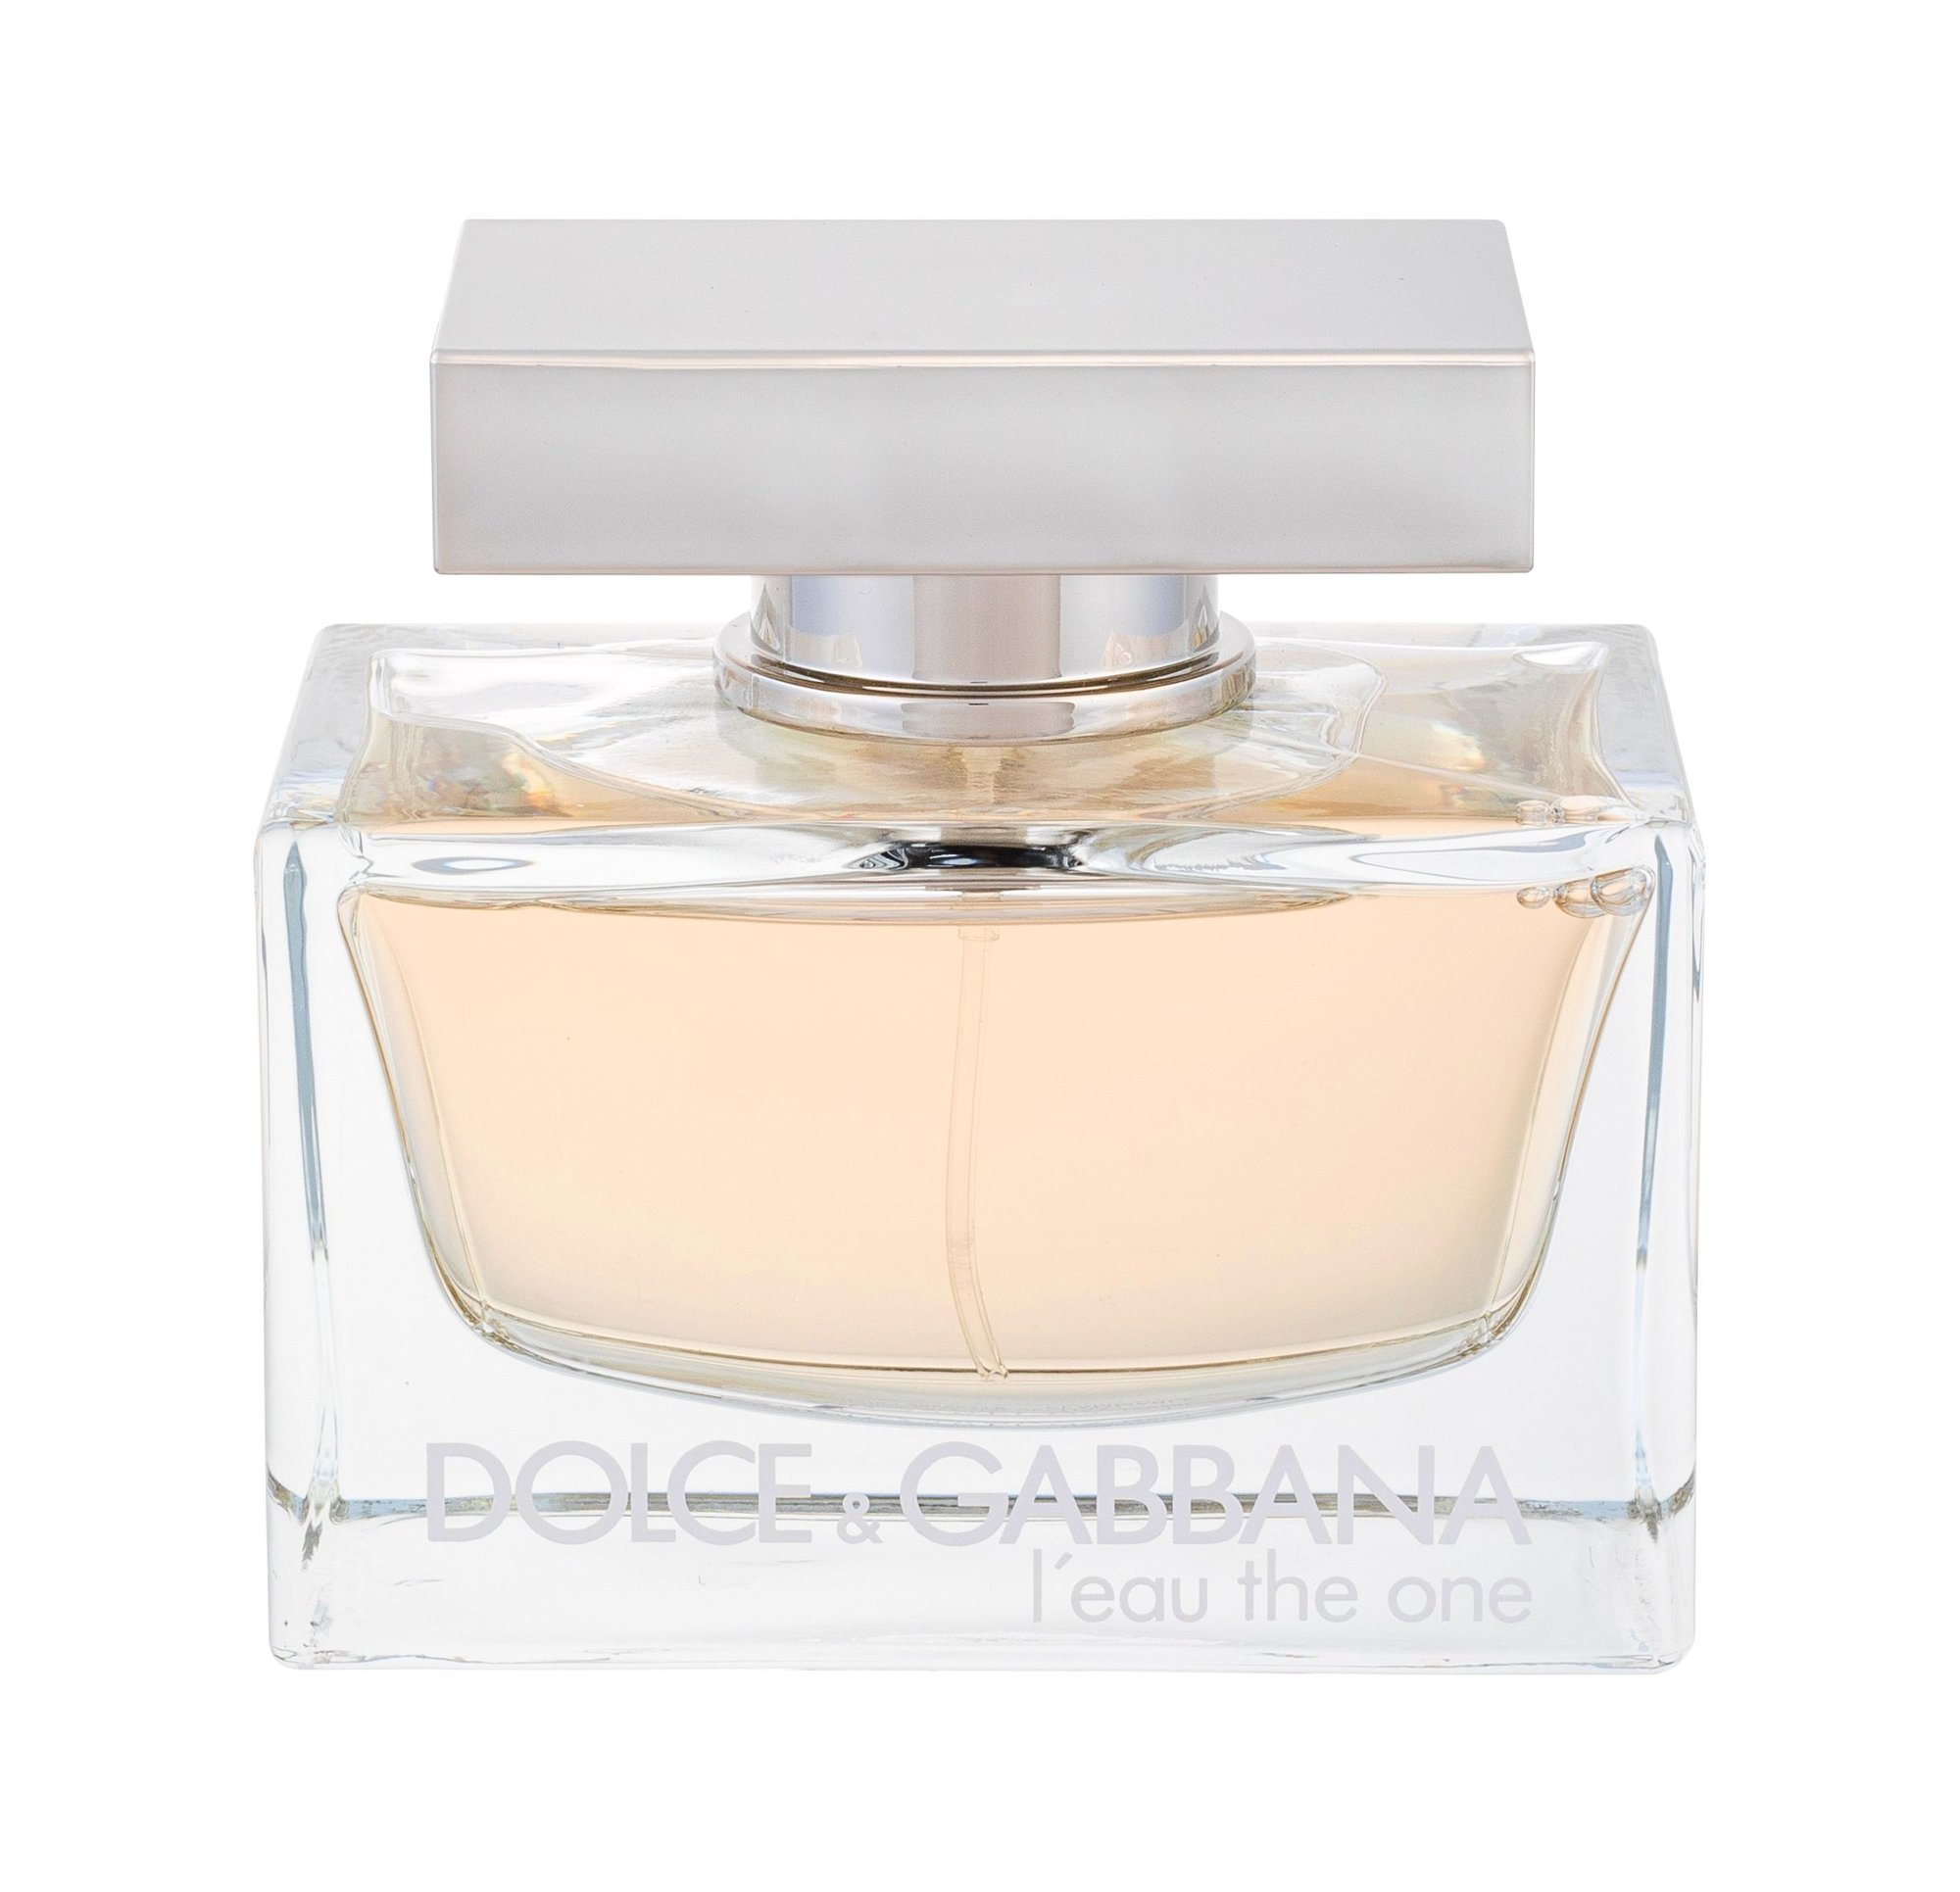 Dolce&Gabbana L´Eau The One EDT 75ml